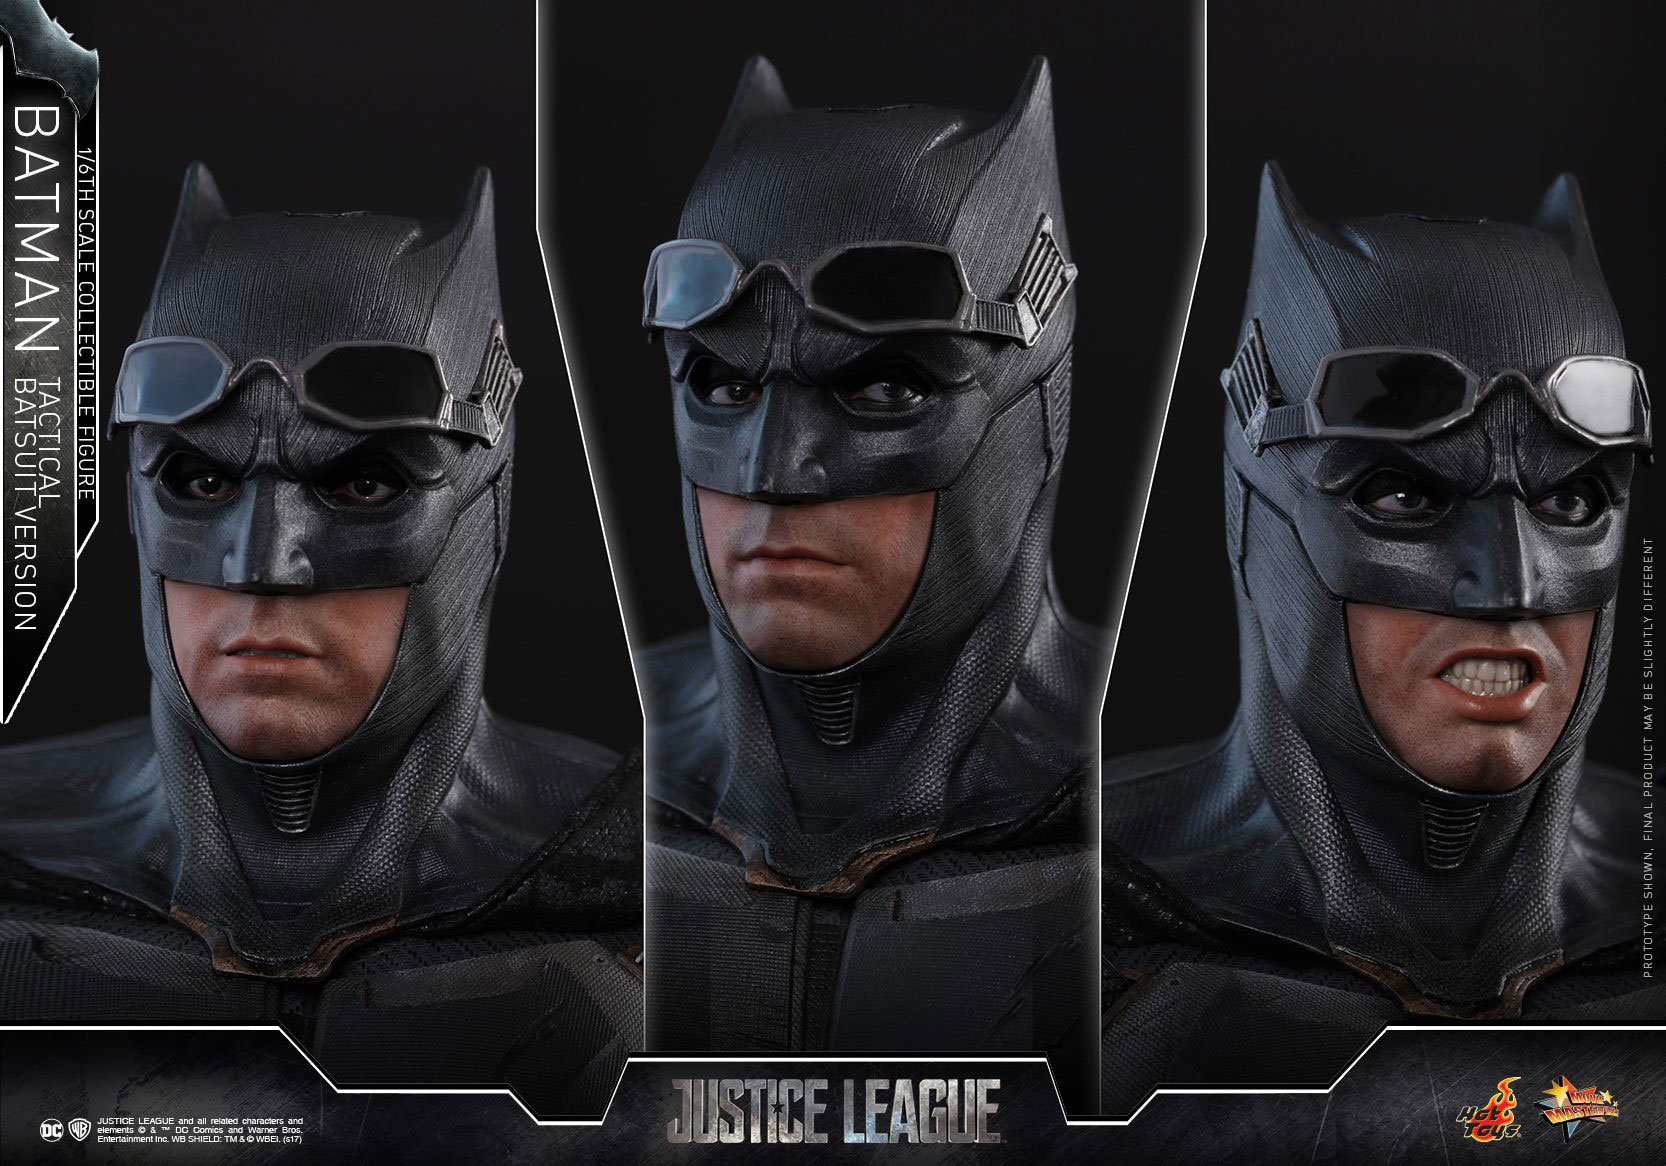 justice-league-batman-tactical-suit-hot-toys-figure-3